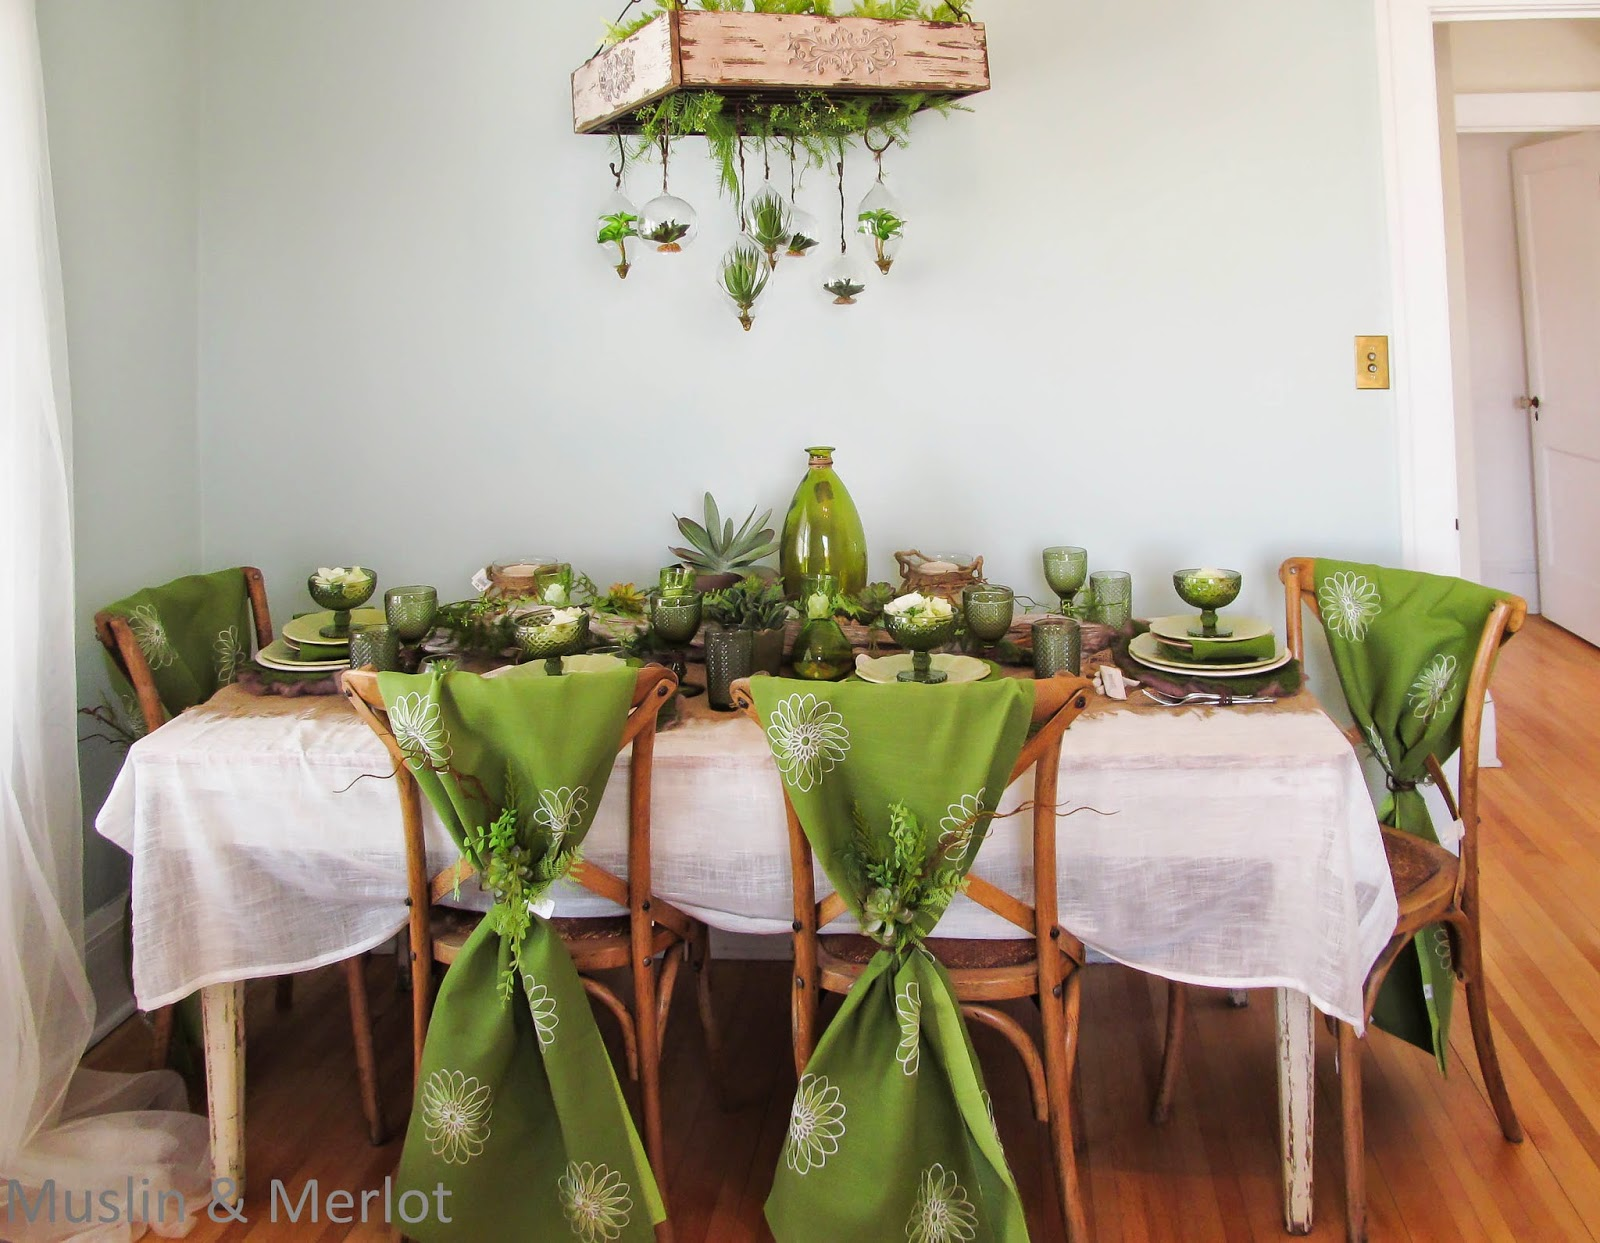 Table runners used as chair covers. Green moss place mats. Centerpiece of salvaged driftwood, succulents, rock and grass.